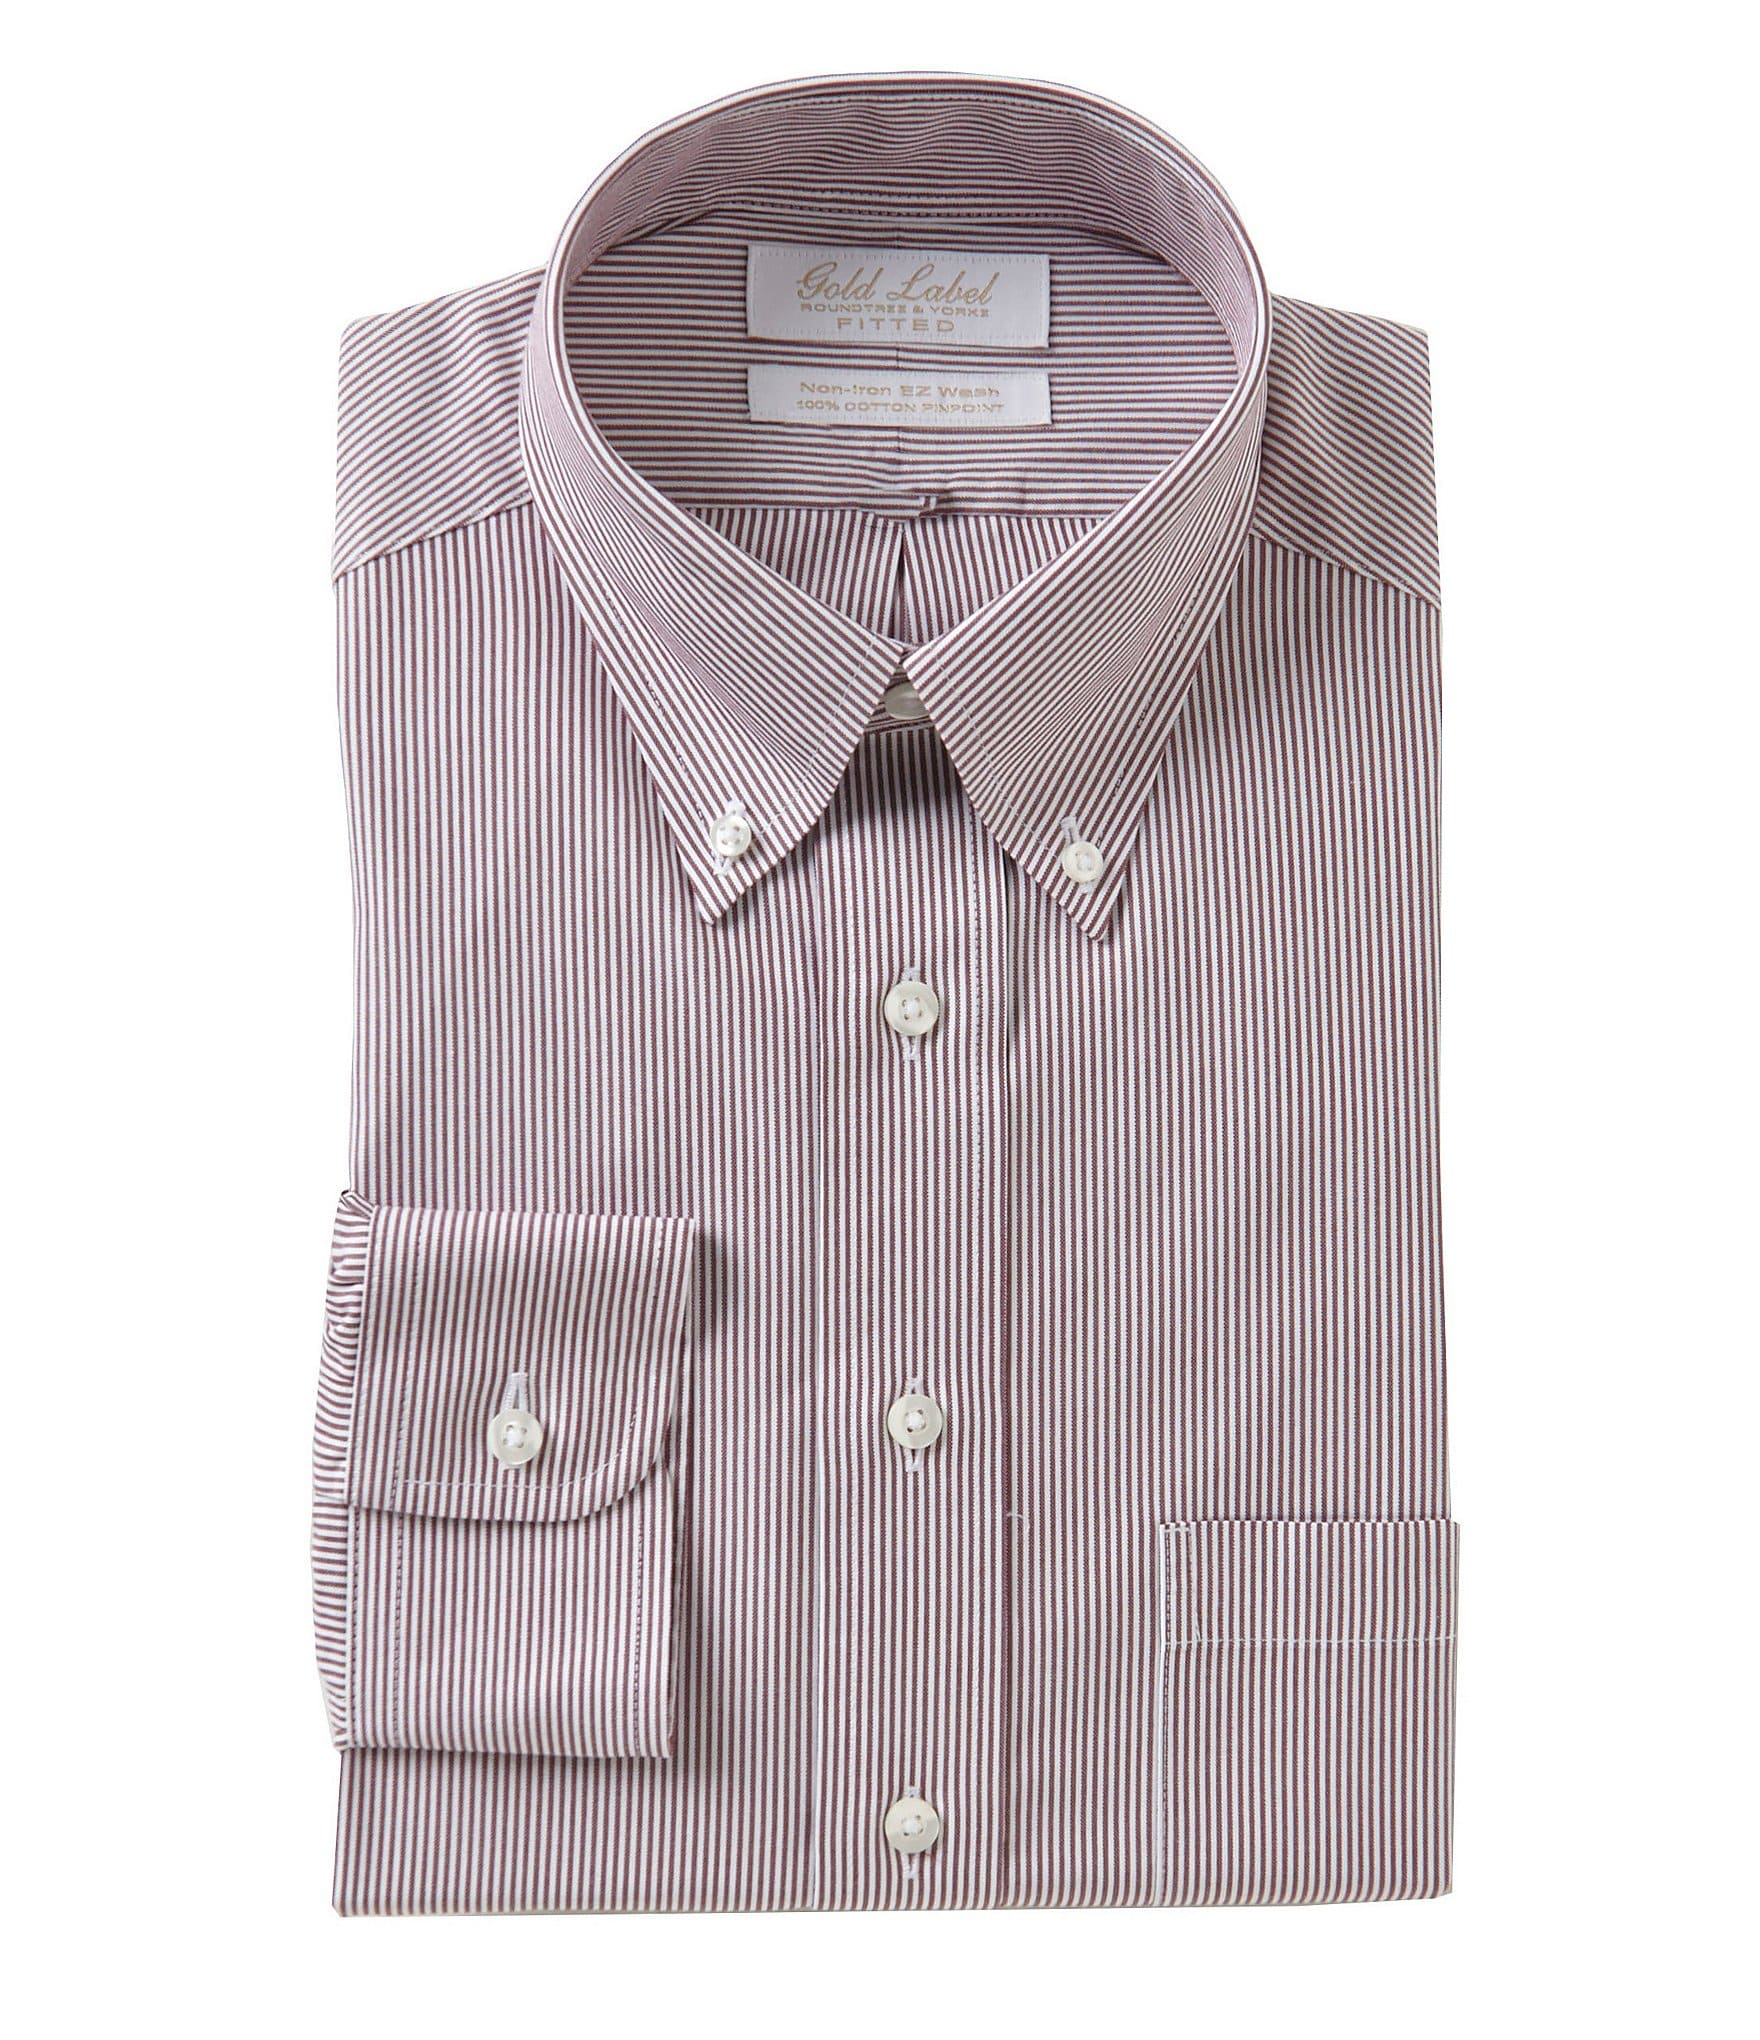 Gold label roundtree yorke non iron fitted button down for What is a non iron shirt